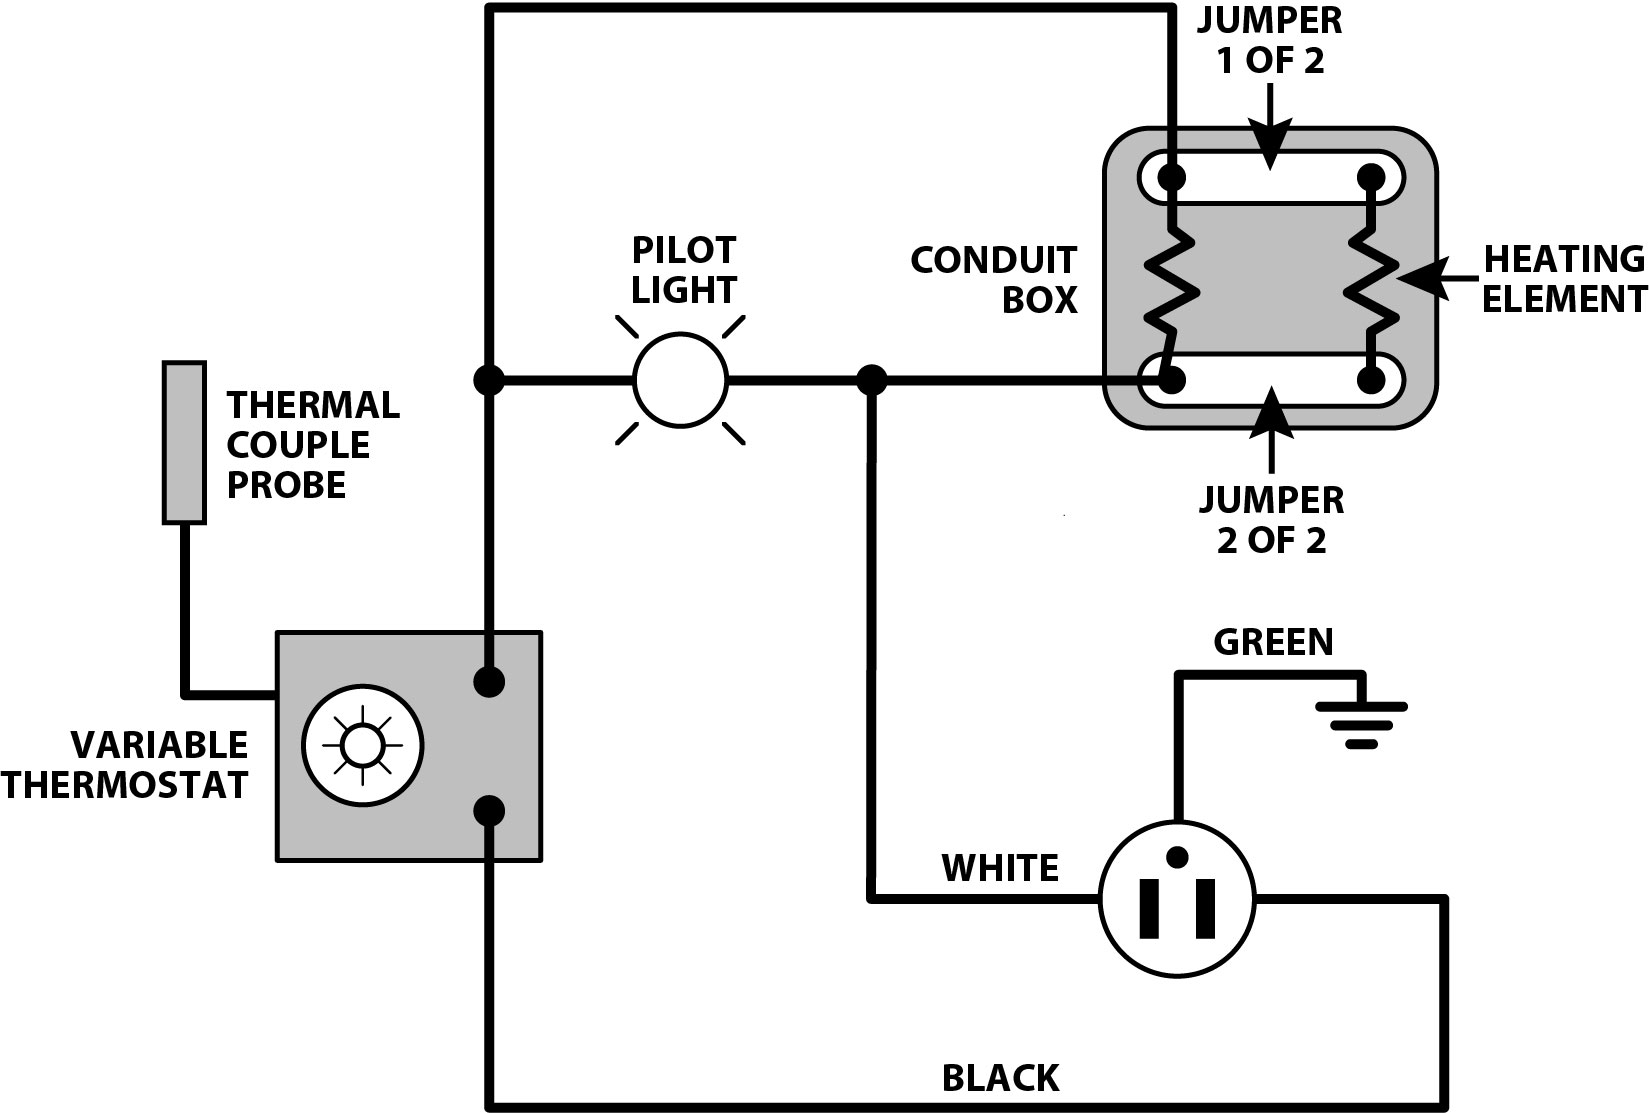 Wiring Diagram For 240v Water Heater : Heat pump electrical schematic diagram v free